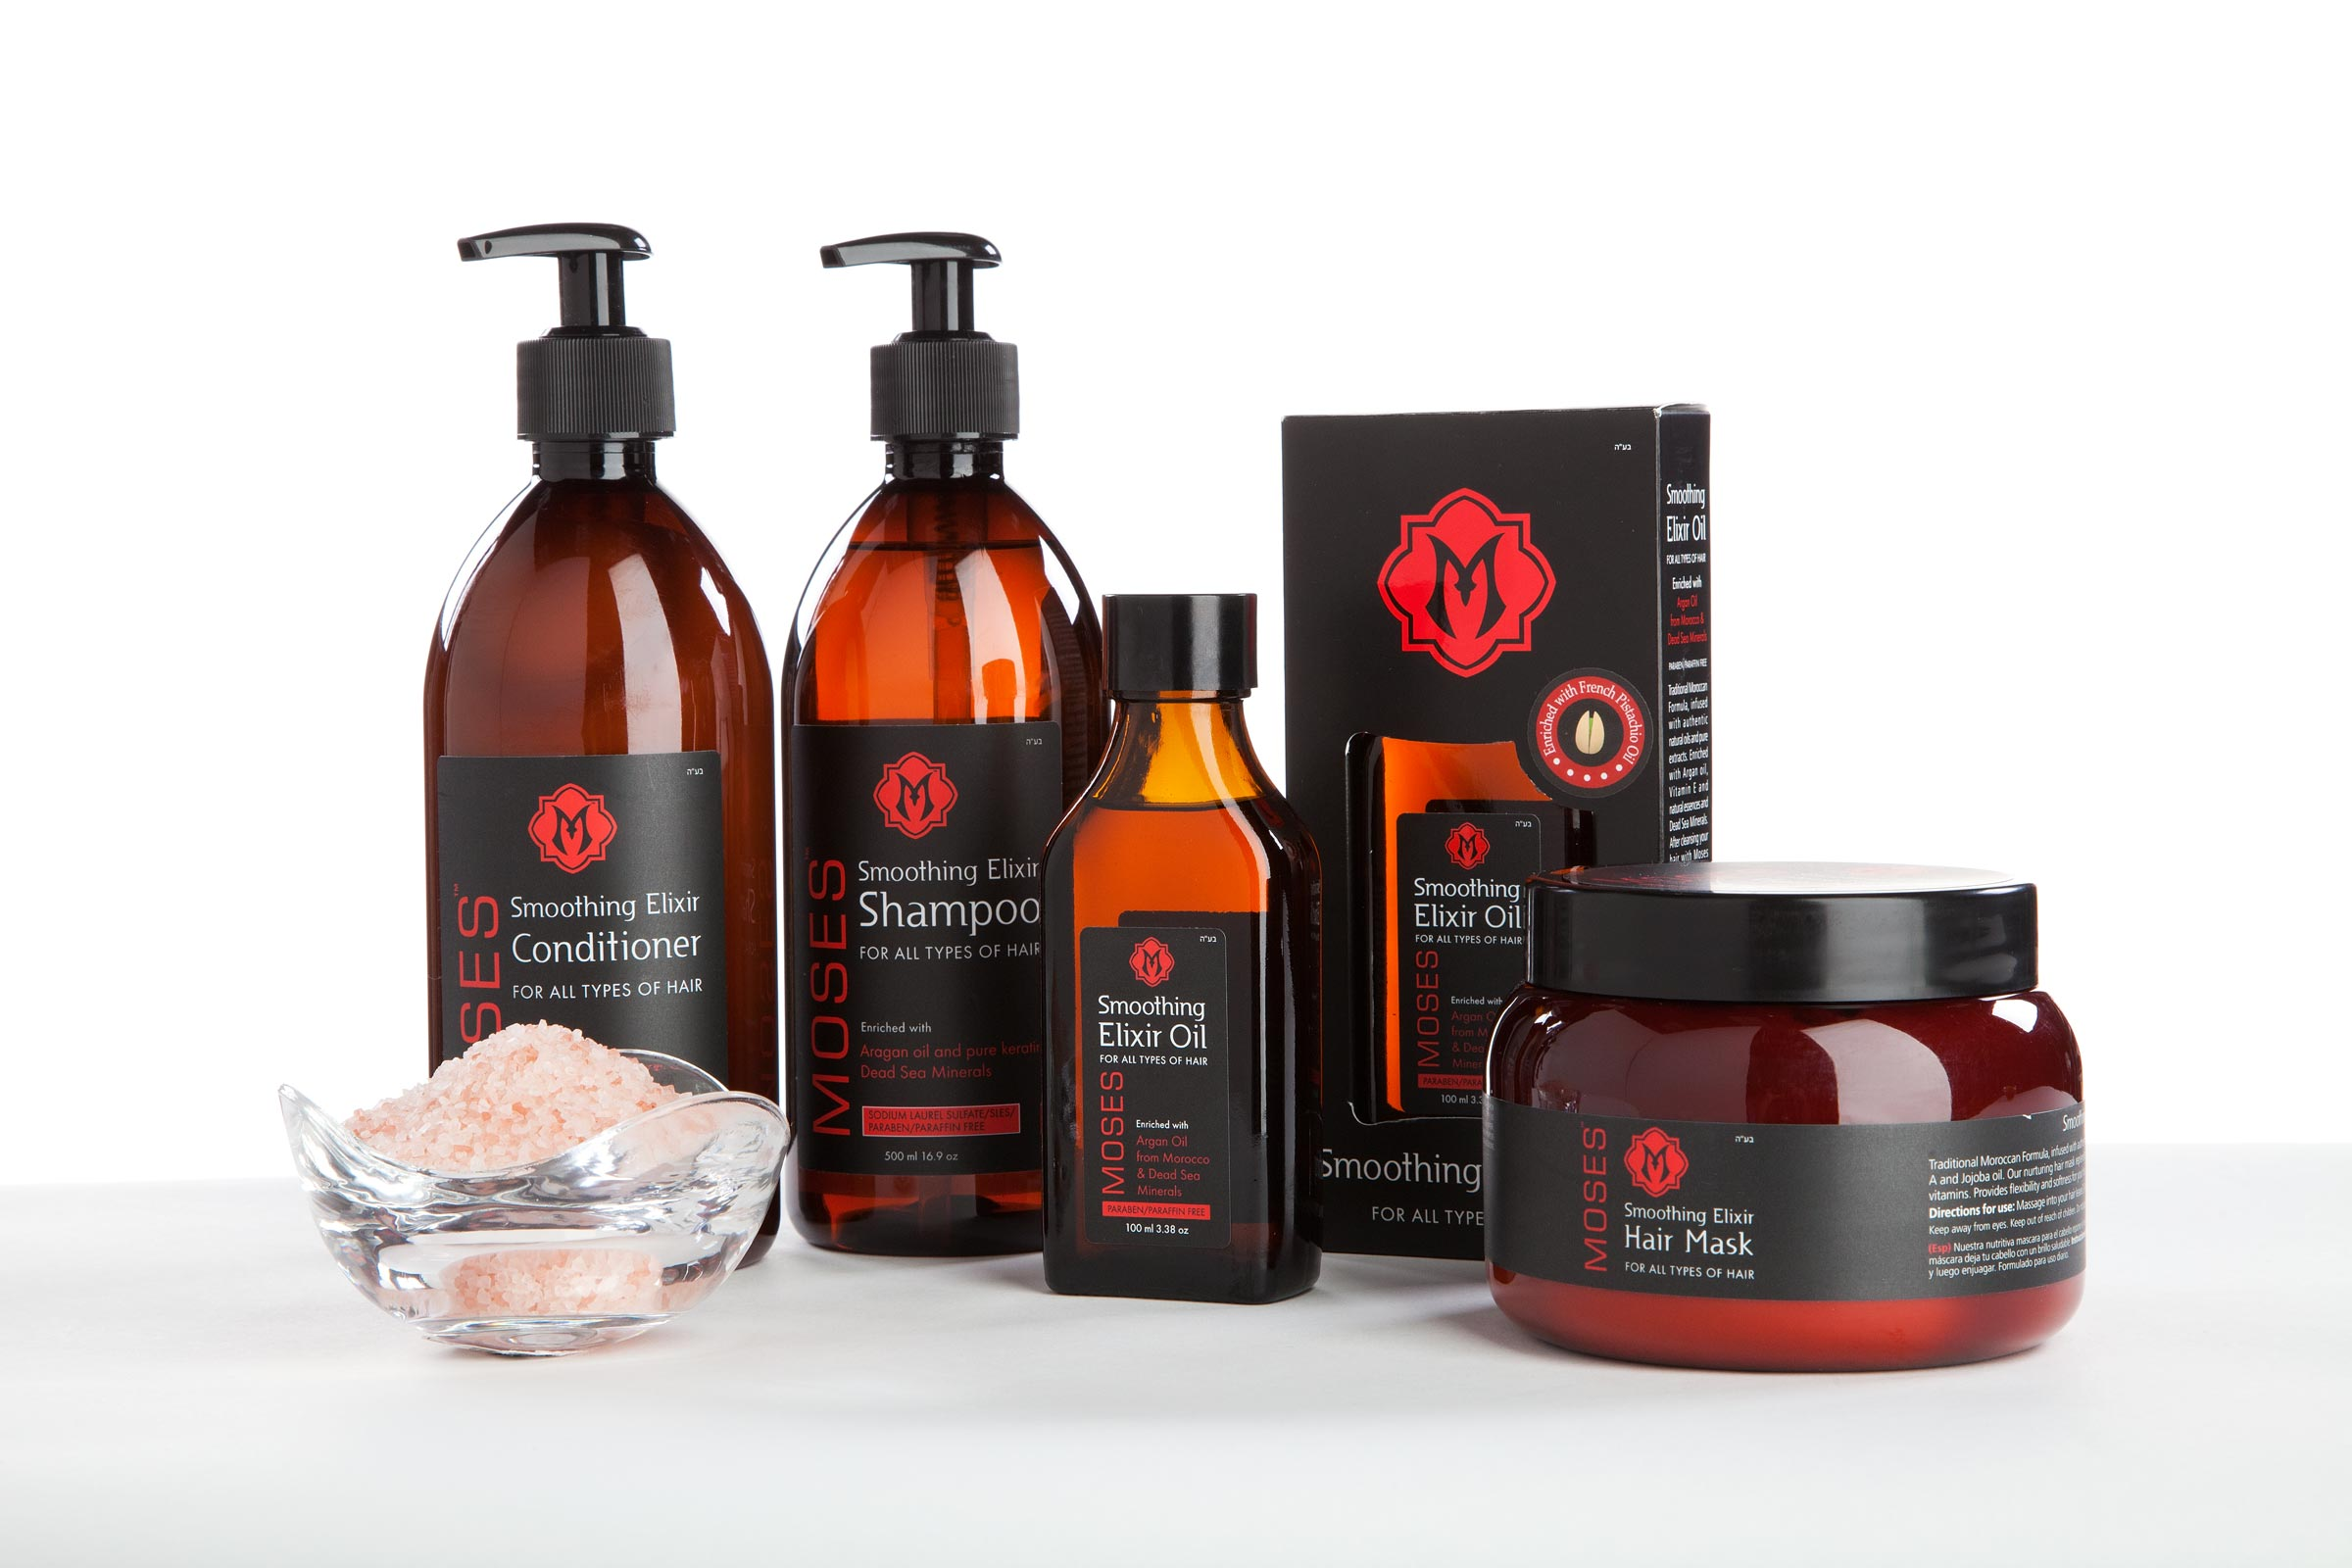 'Smoothing Elixir Haircare System' Product Photos